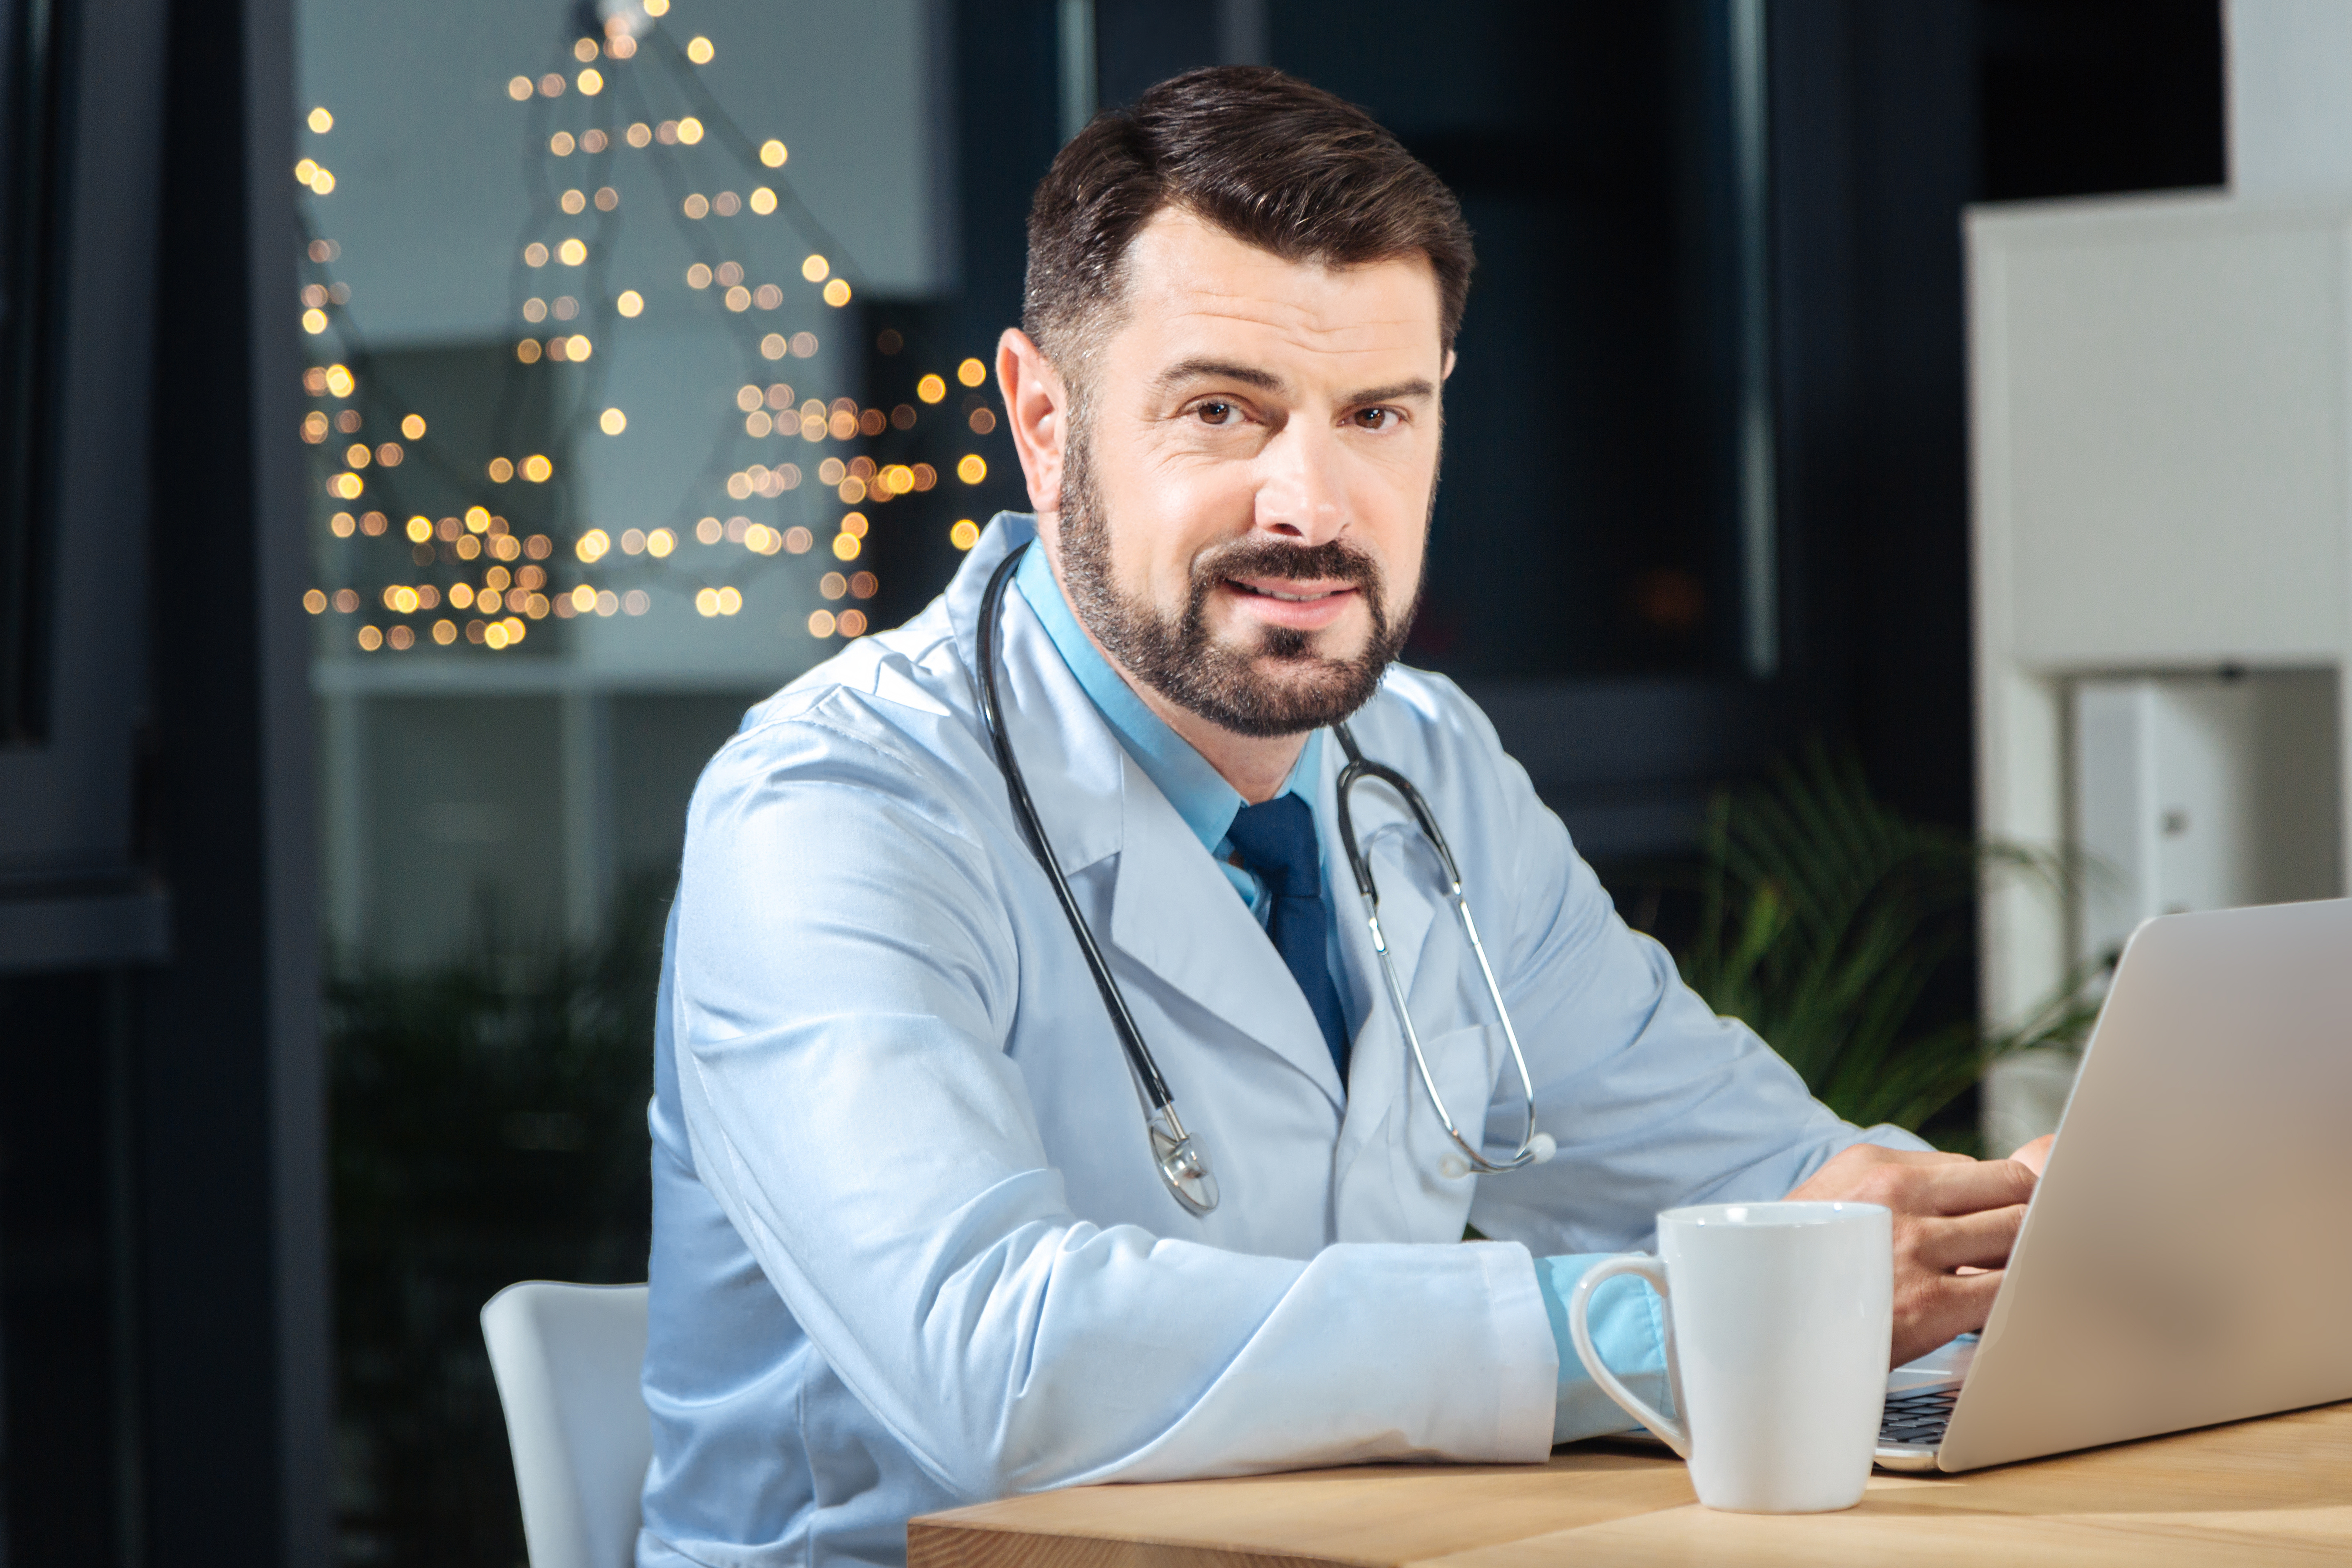 moonlighting jobs for physicians